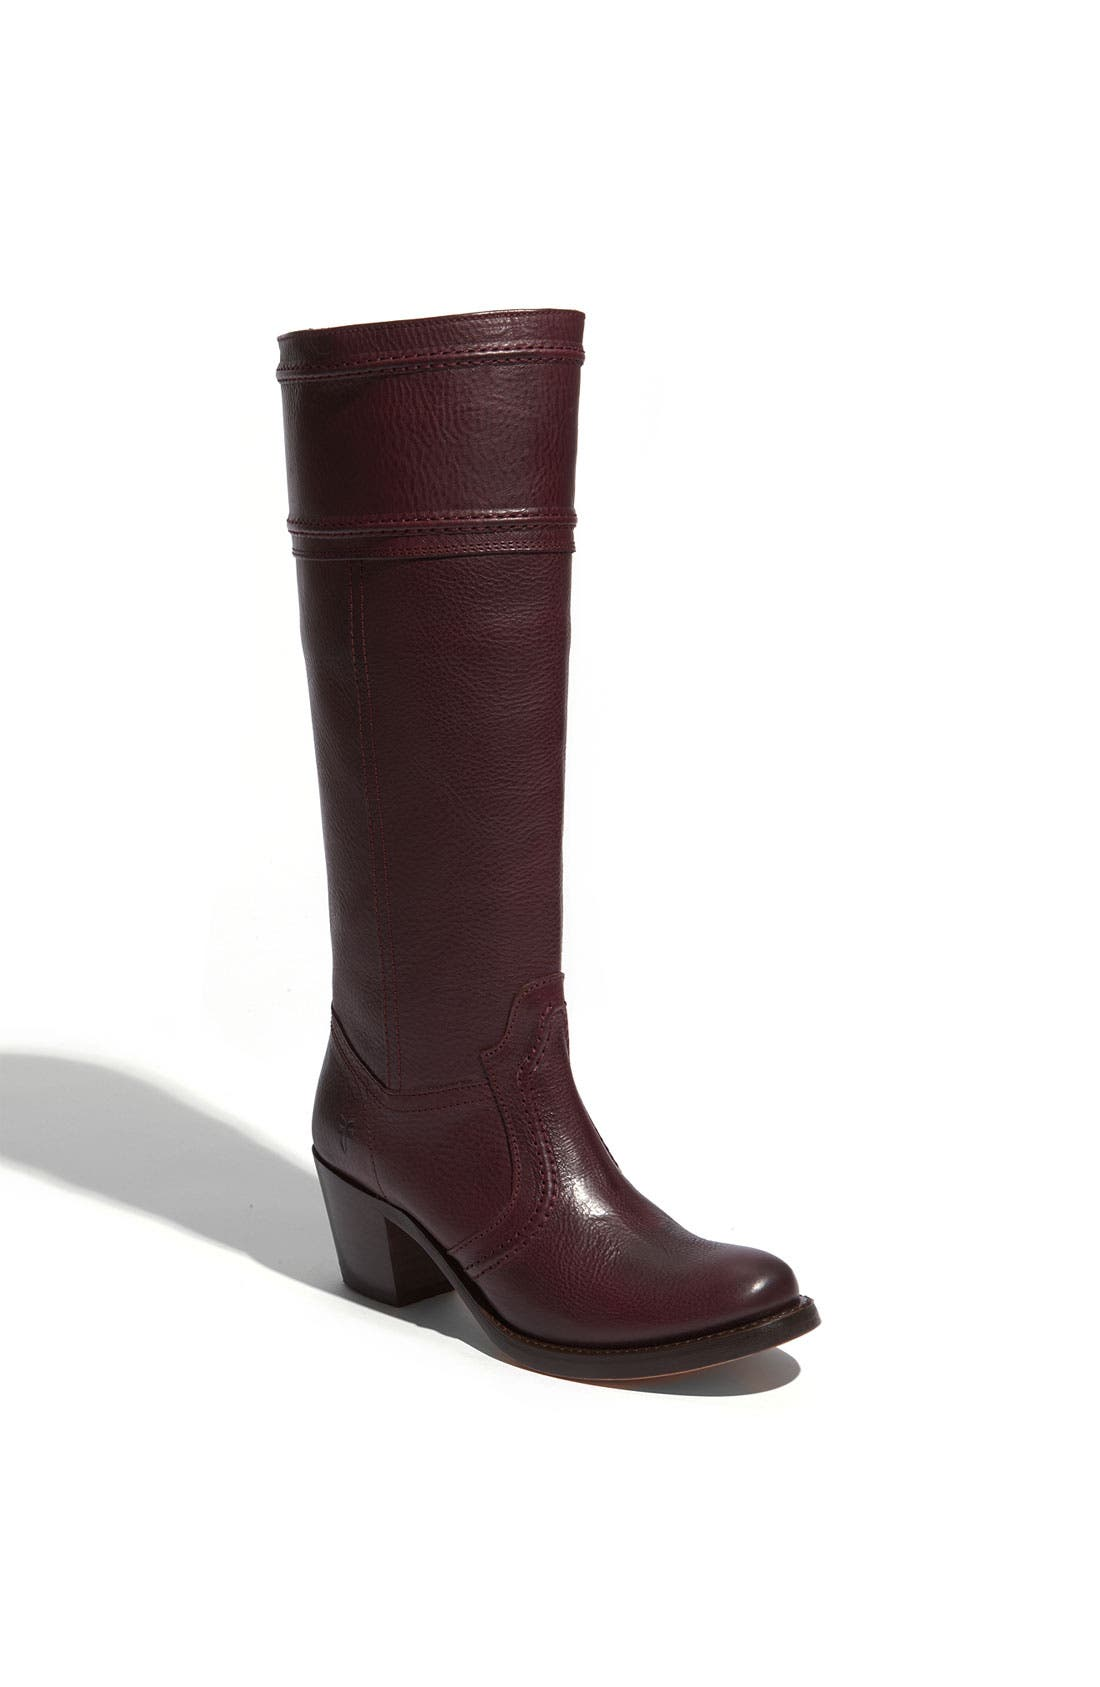 Alternate Image 1 Selected - Frye 'Jane 14' Tall Pull-On Boot